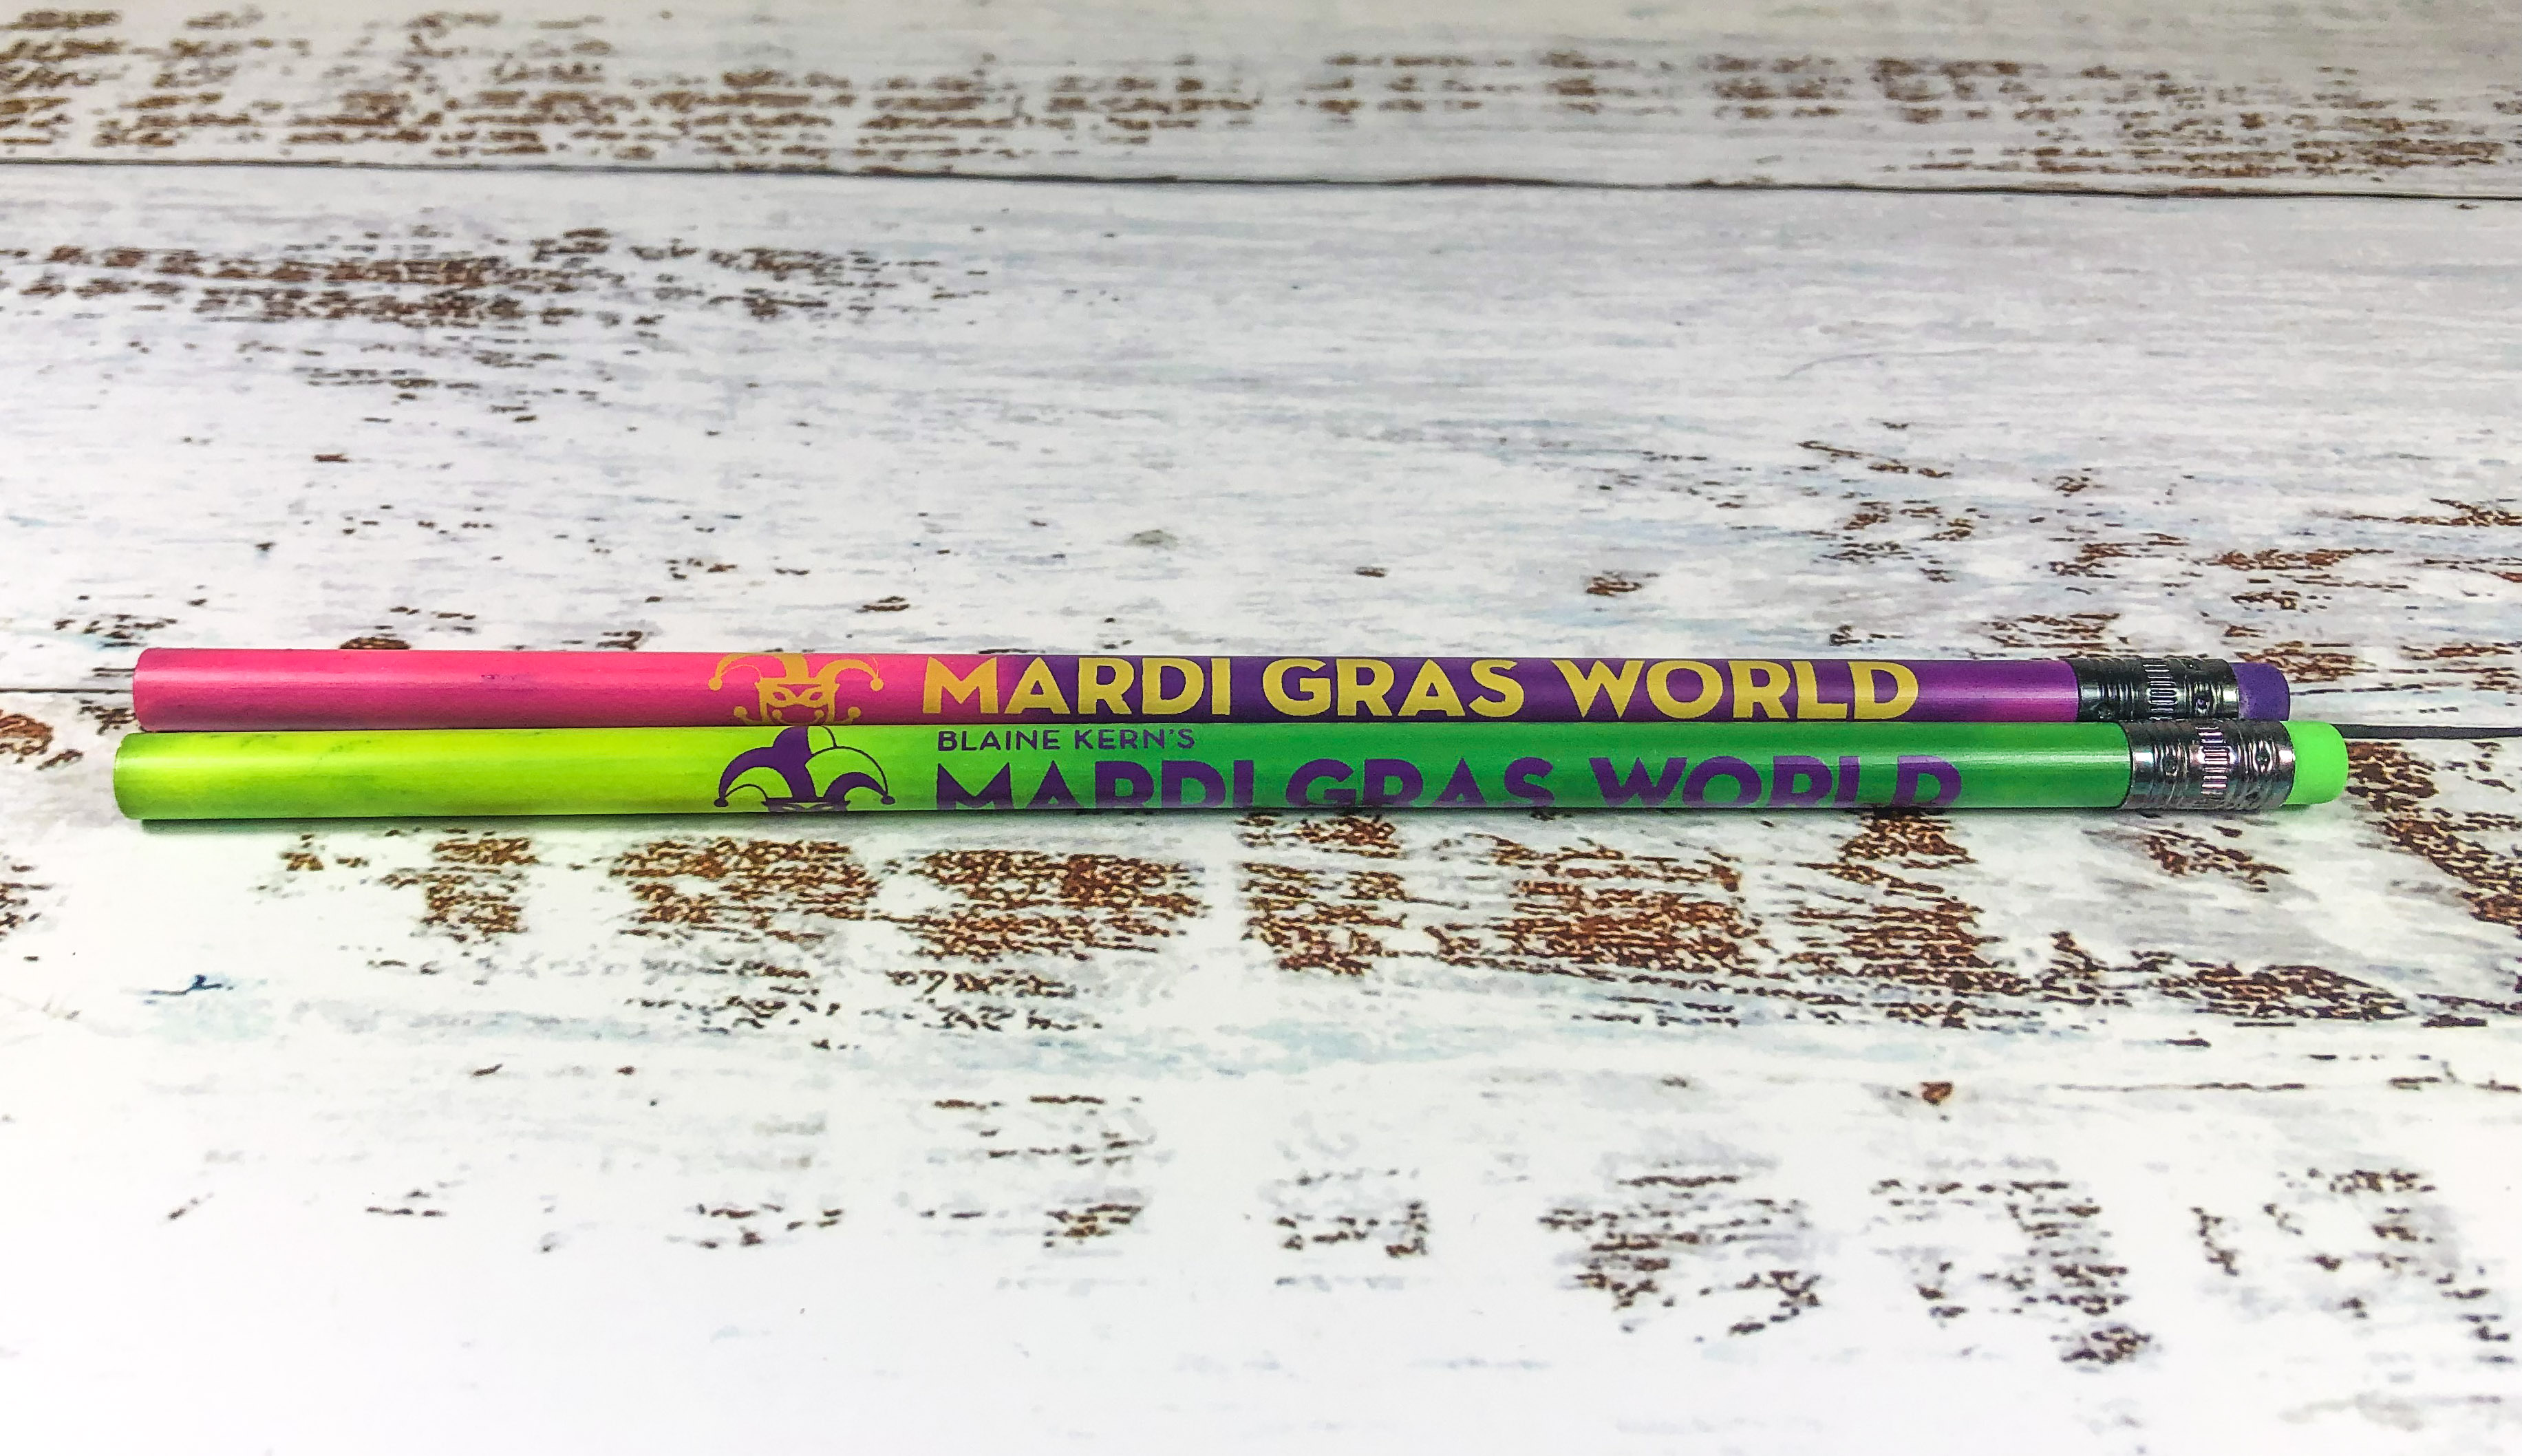 New Mardi Gras World Logo Mood Pencils,MGW-MOOD PENCILS